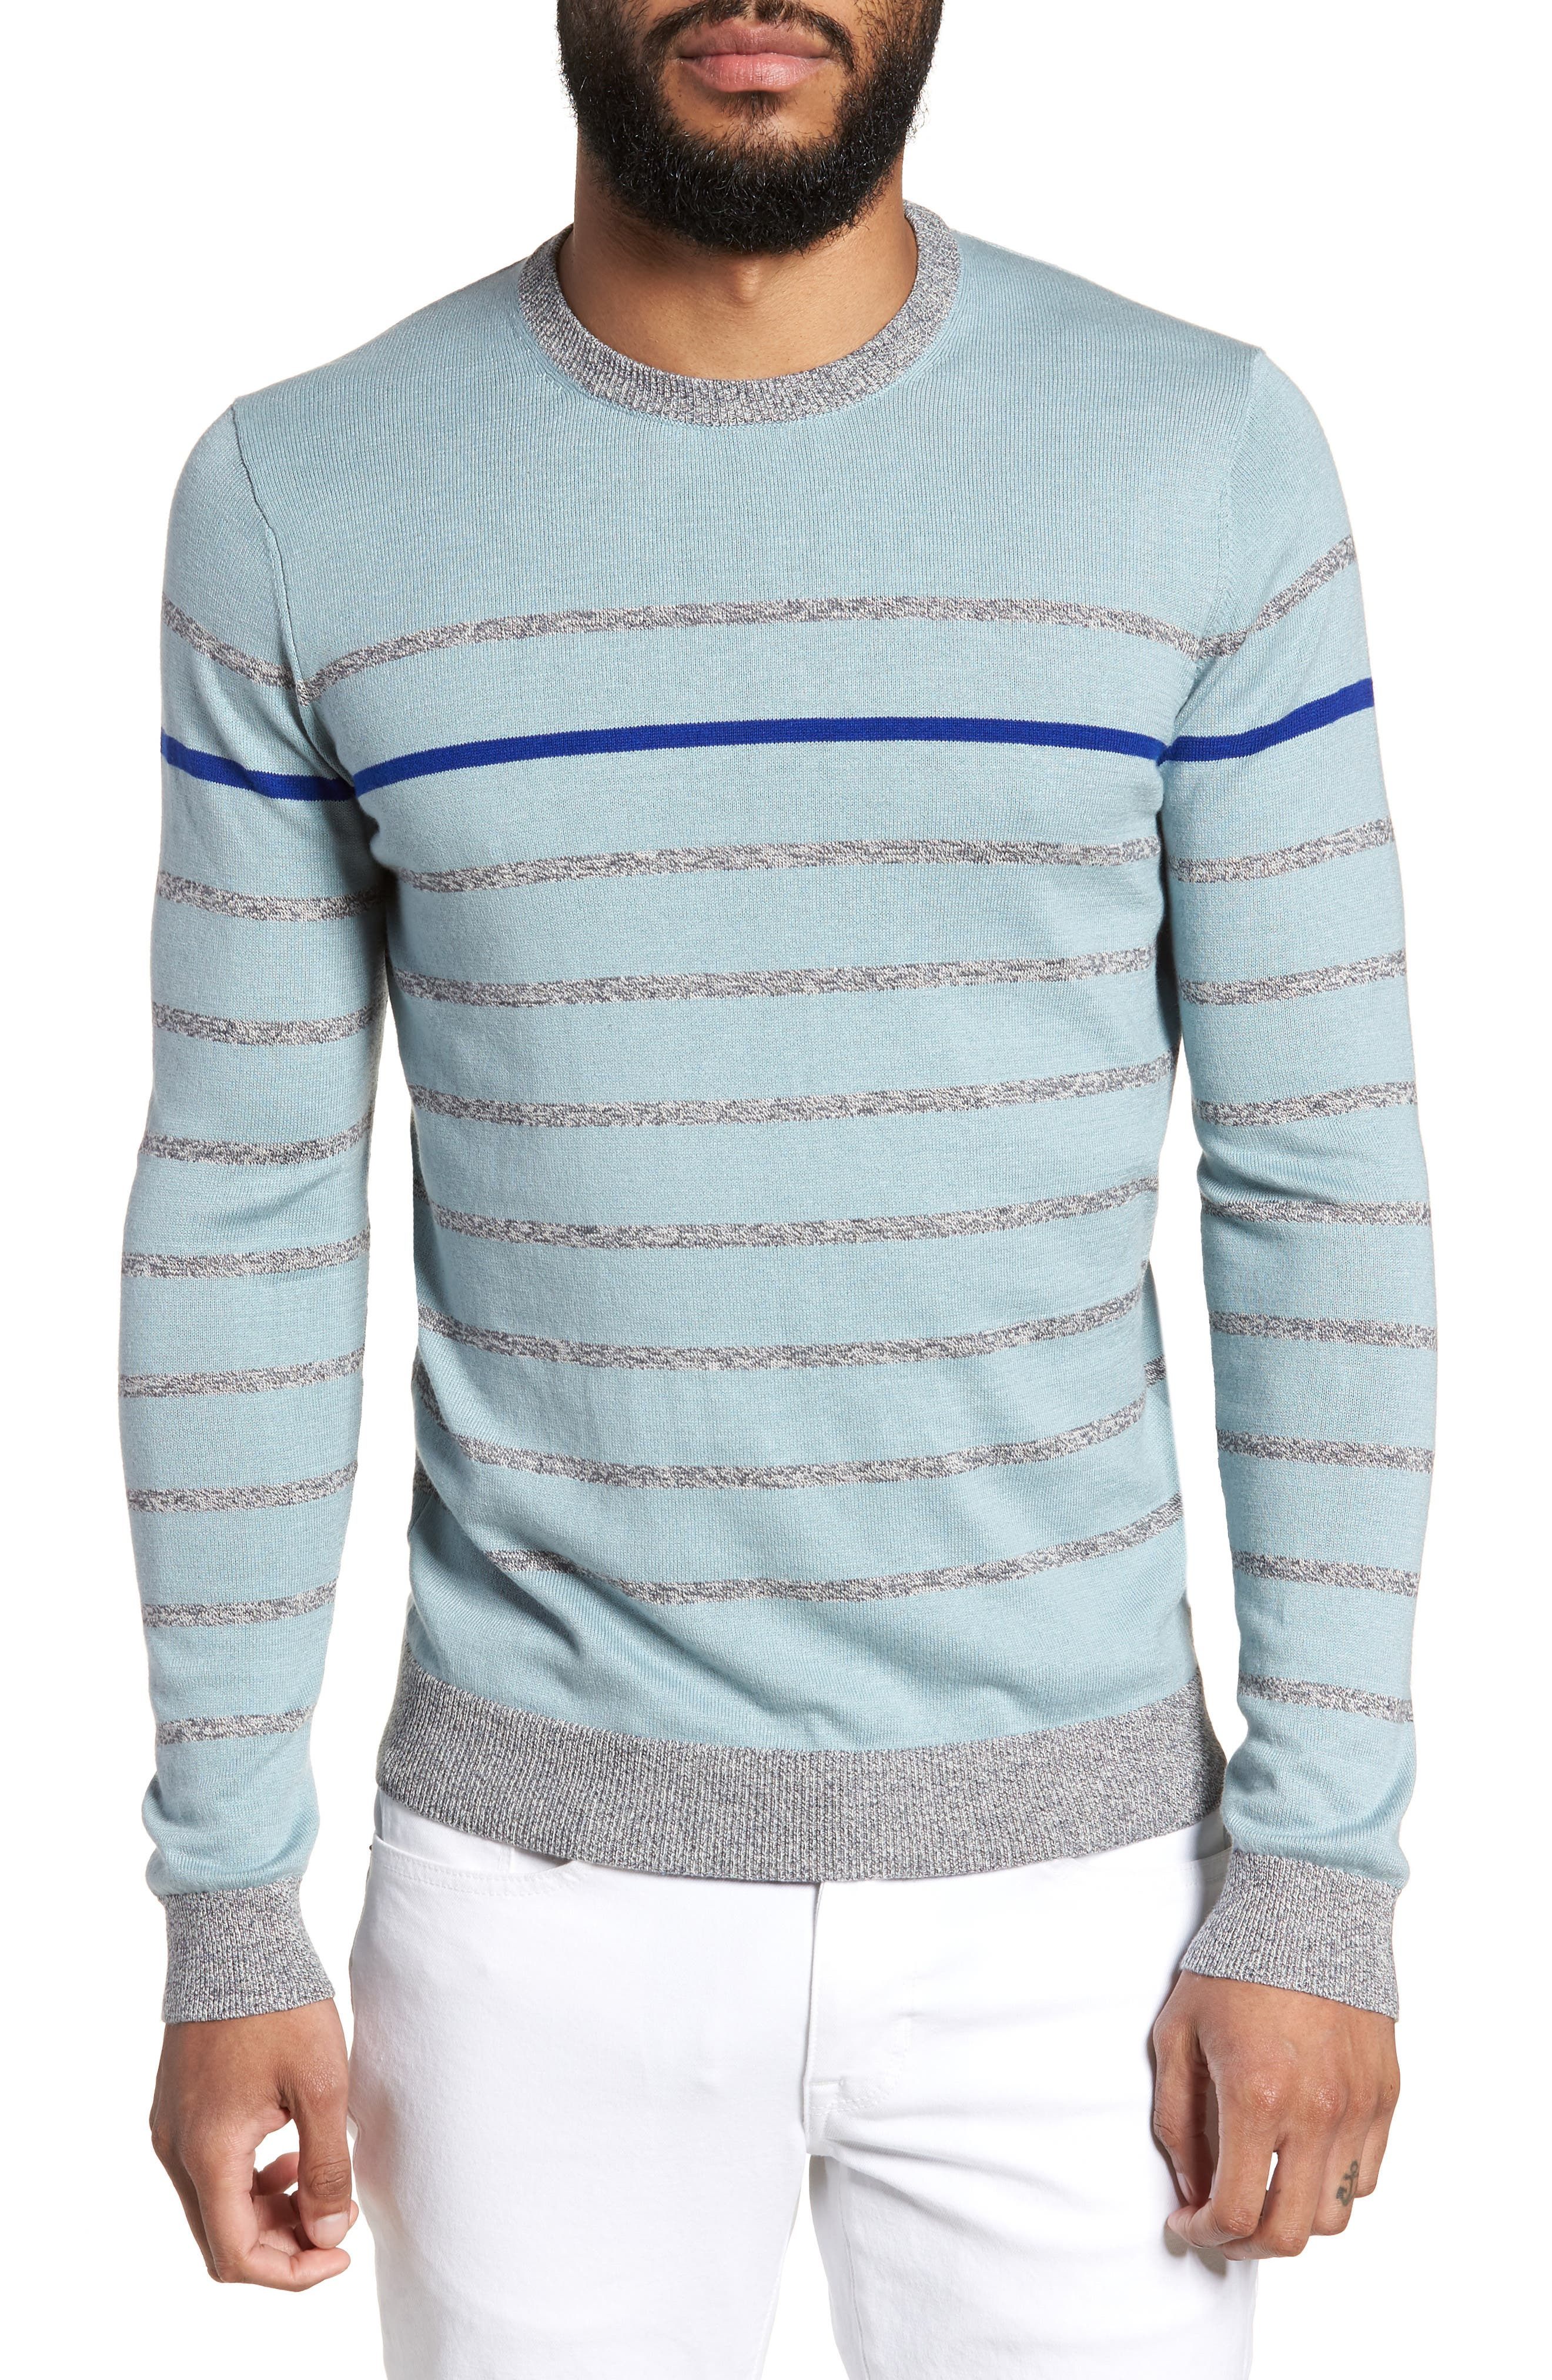 Britnay Trim Fit Stripe Crewneck Sweater,                             Main thumbnail 1, color,                             Blue